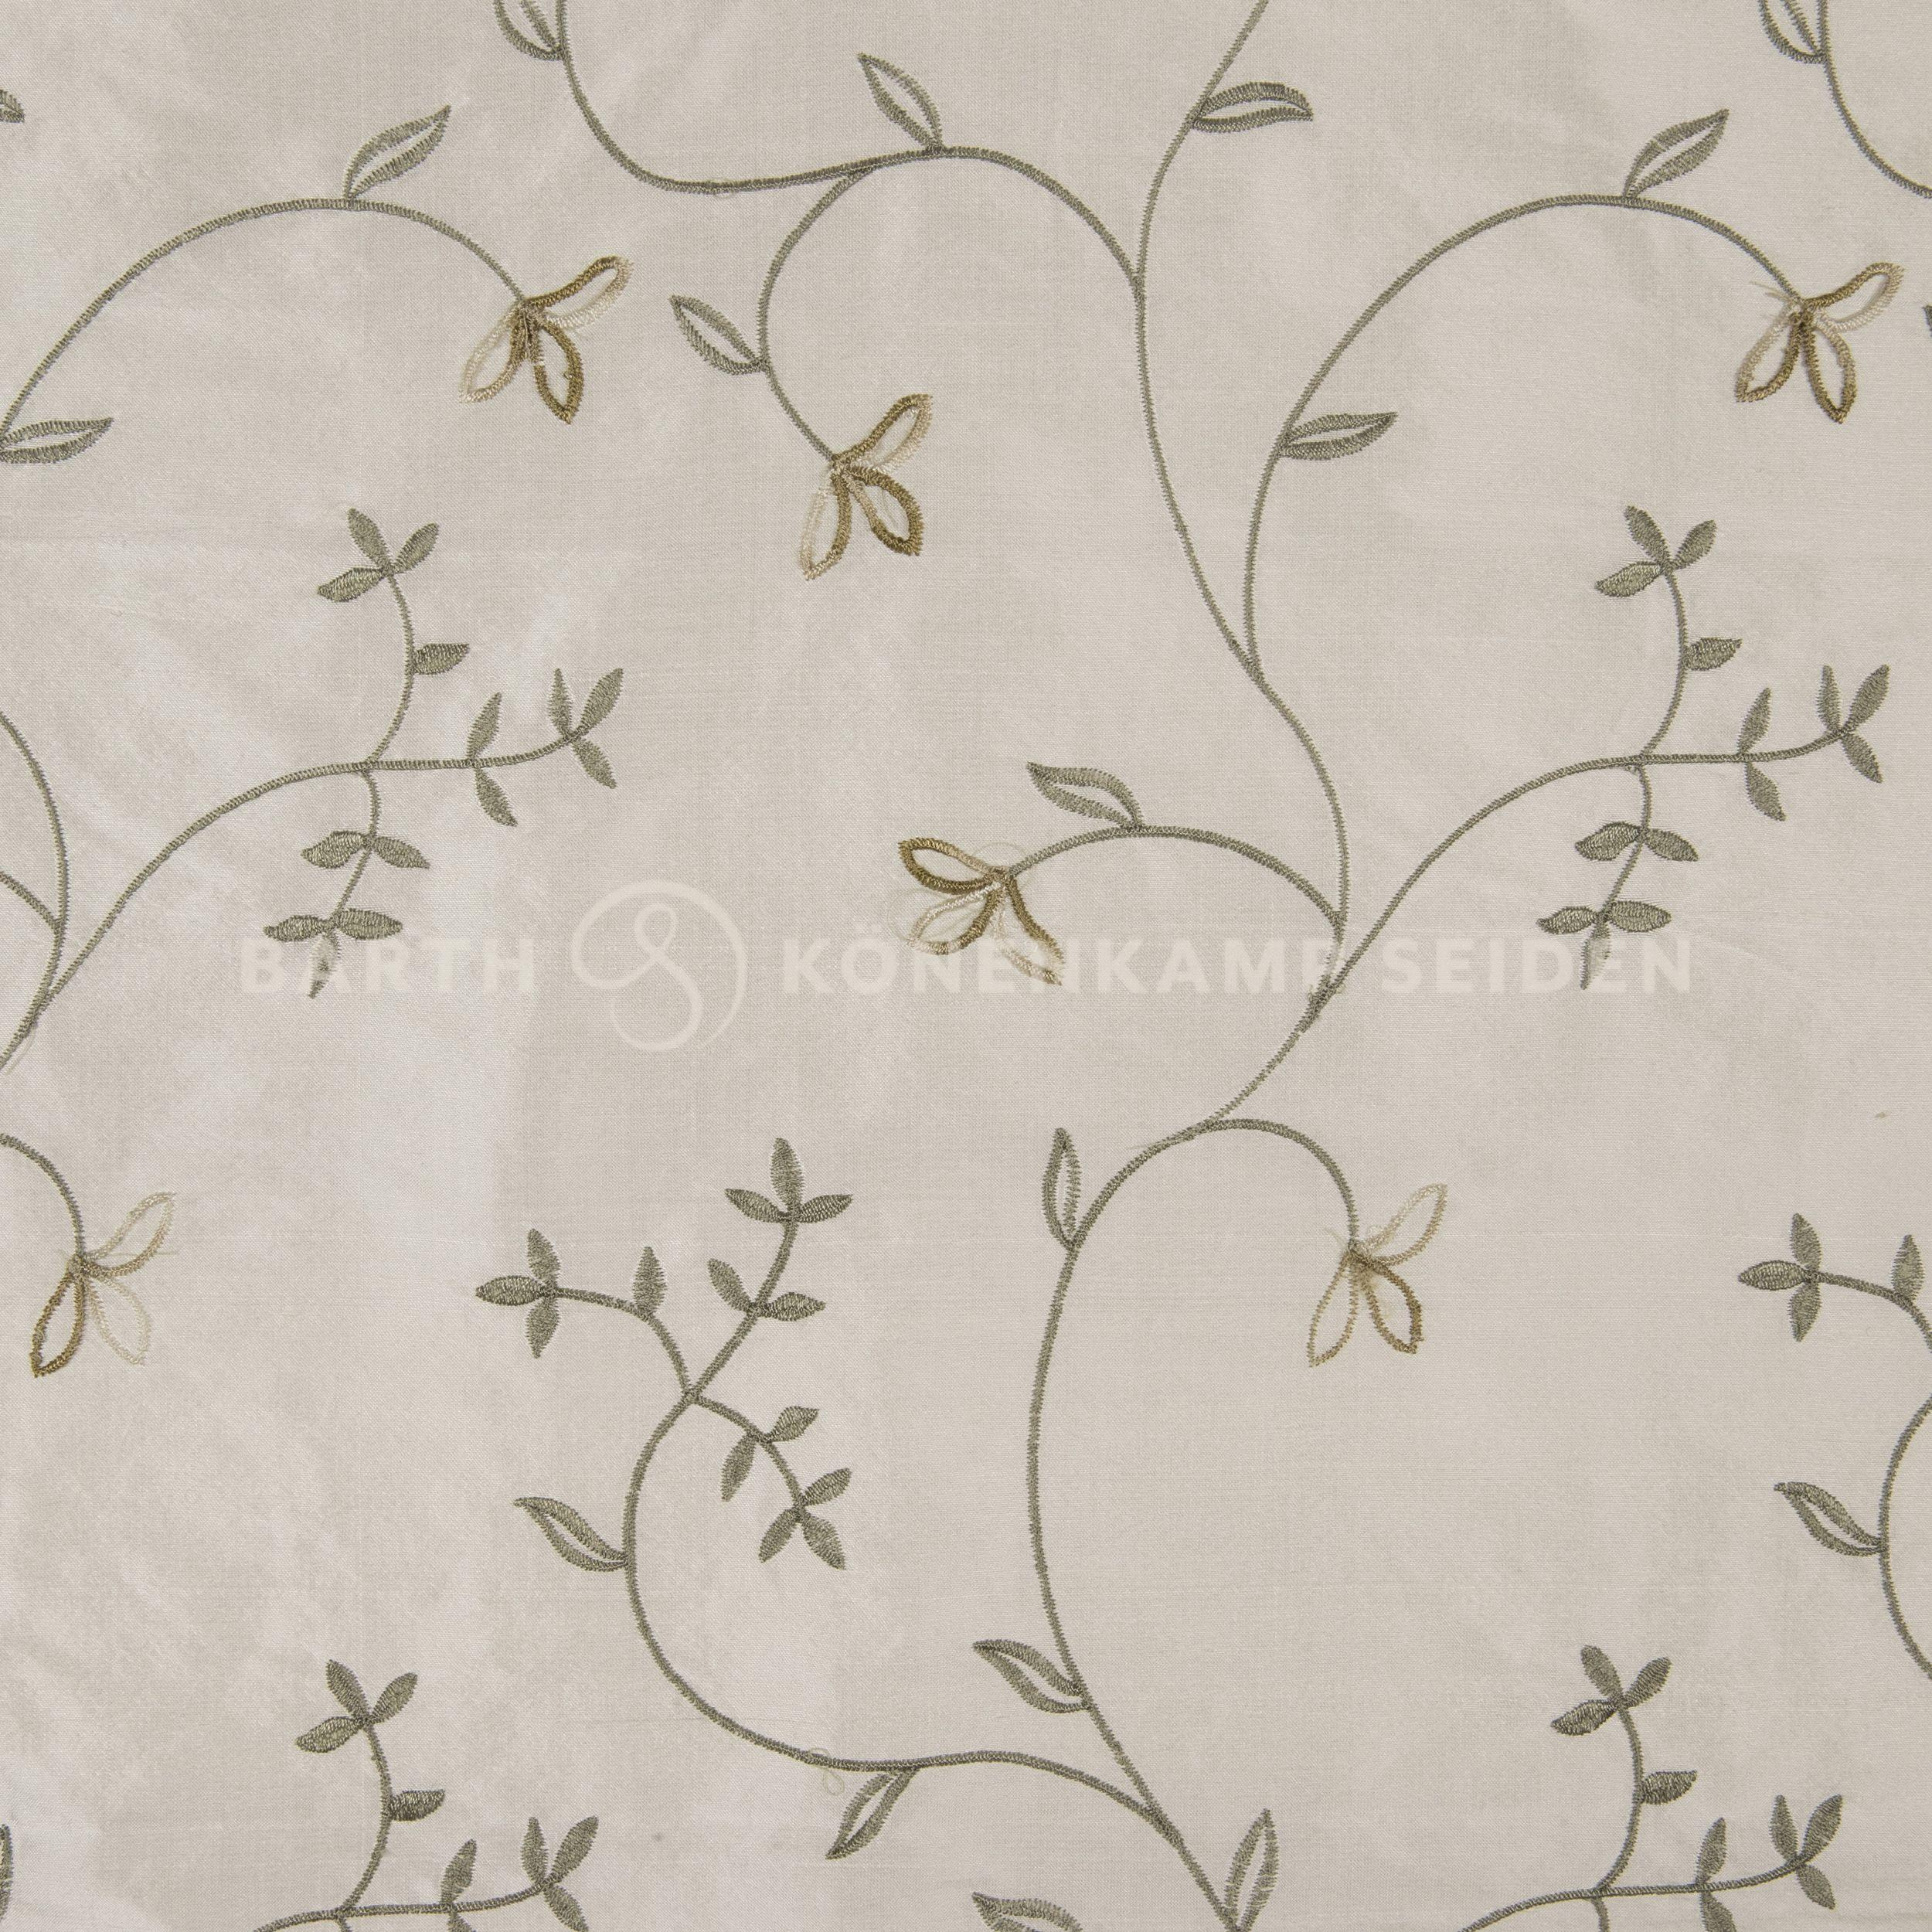 3065M-81 / Doupion silk with ornate embroidery